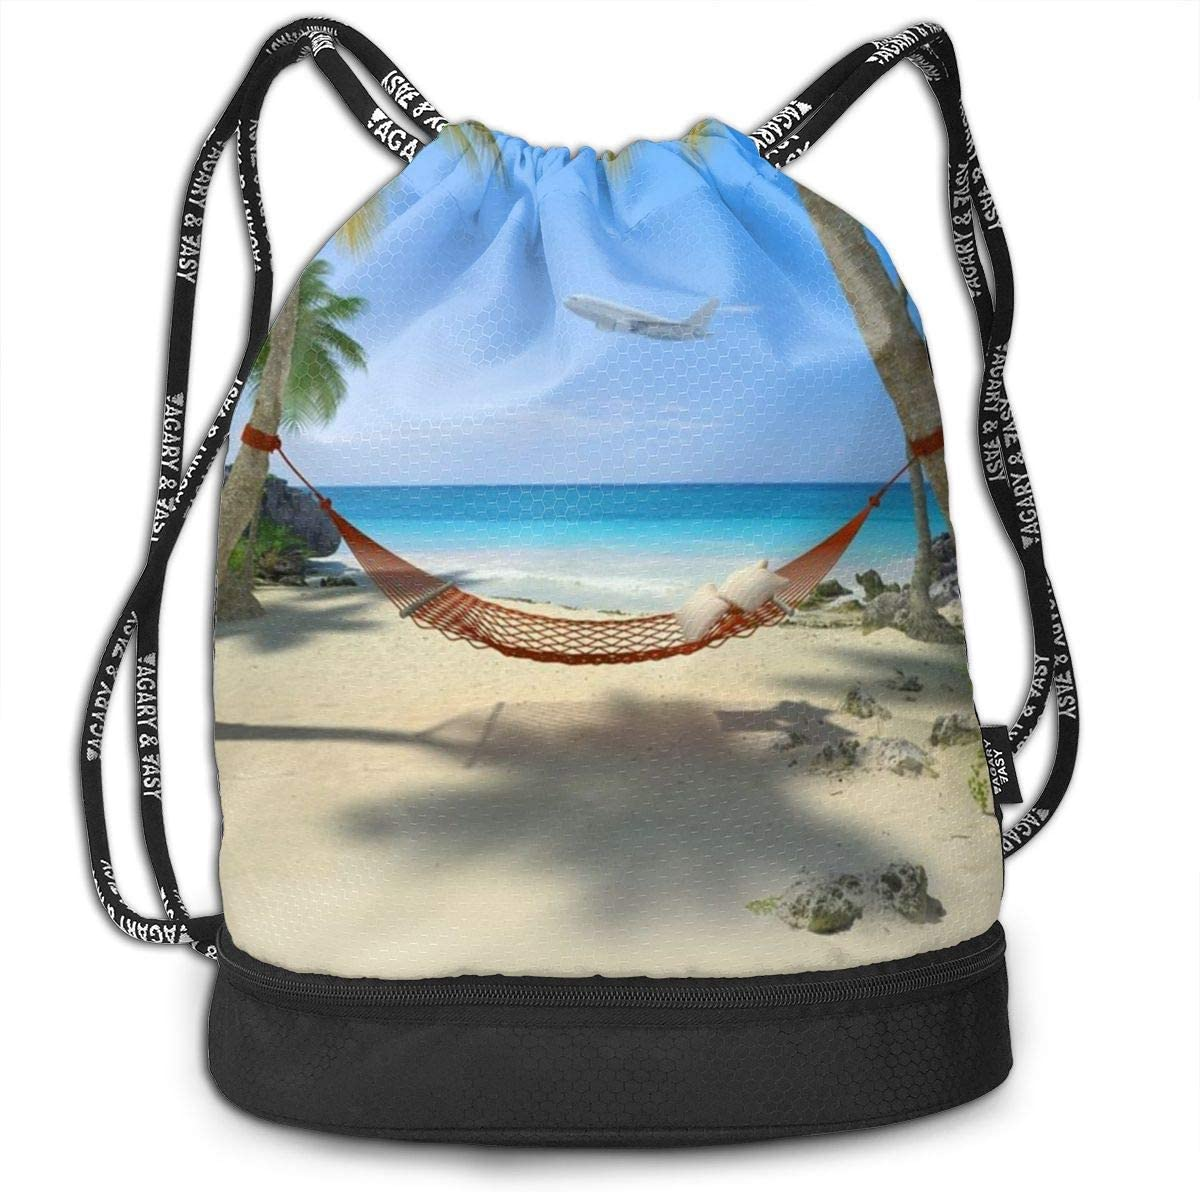 Tropical Beach With A Hammock Hanging From Palm Trees Multifunctional Bundle Backpack Shoulder Bag For Men And Women